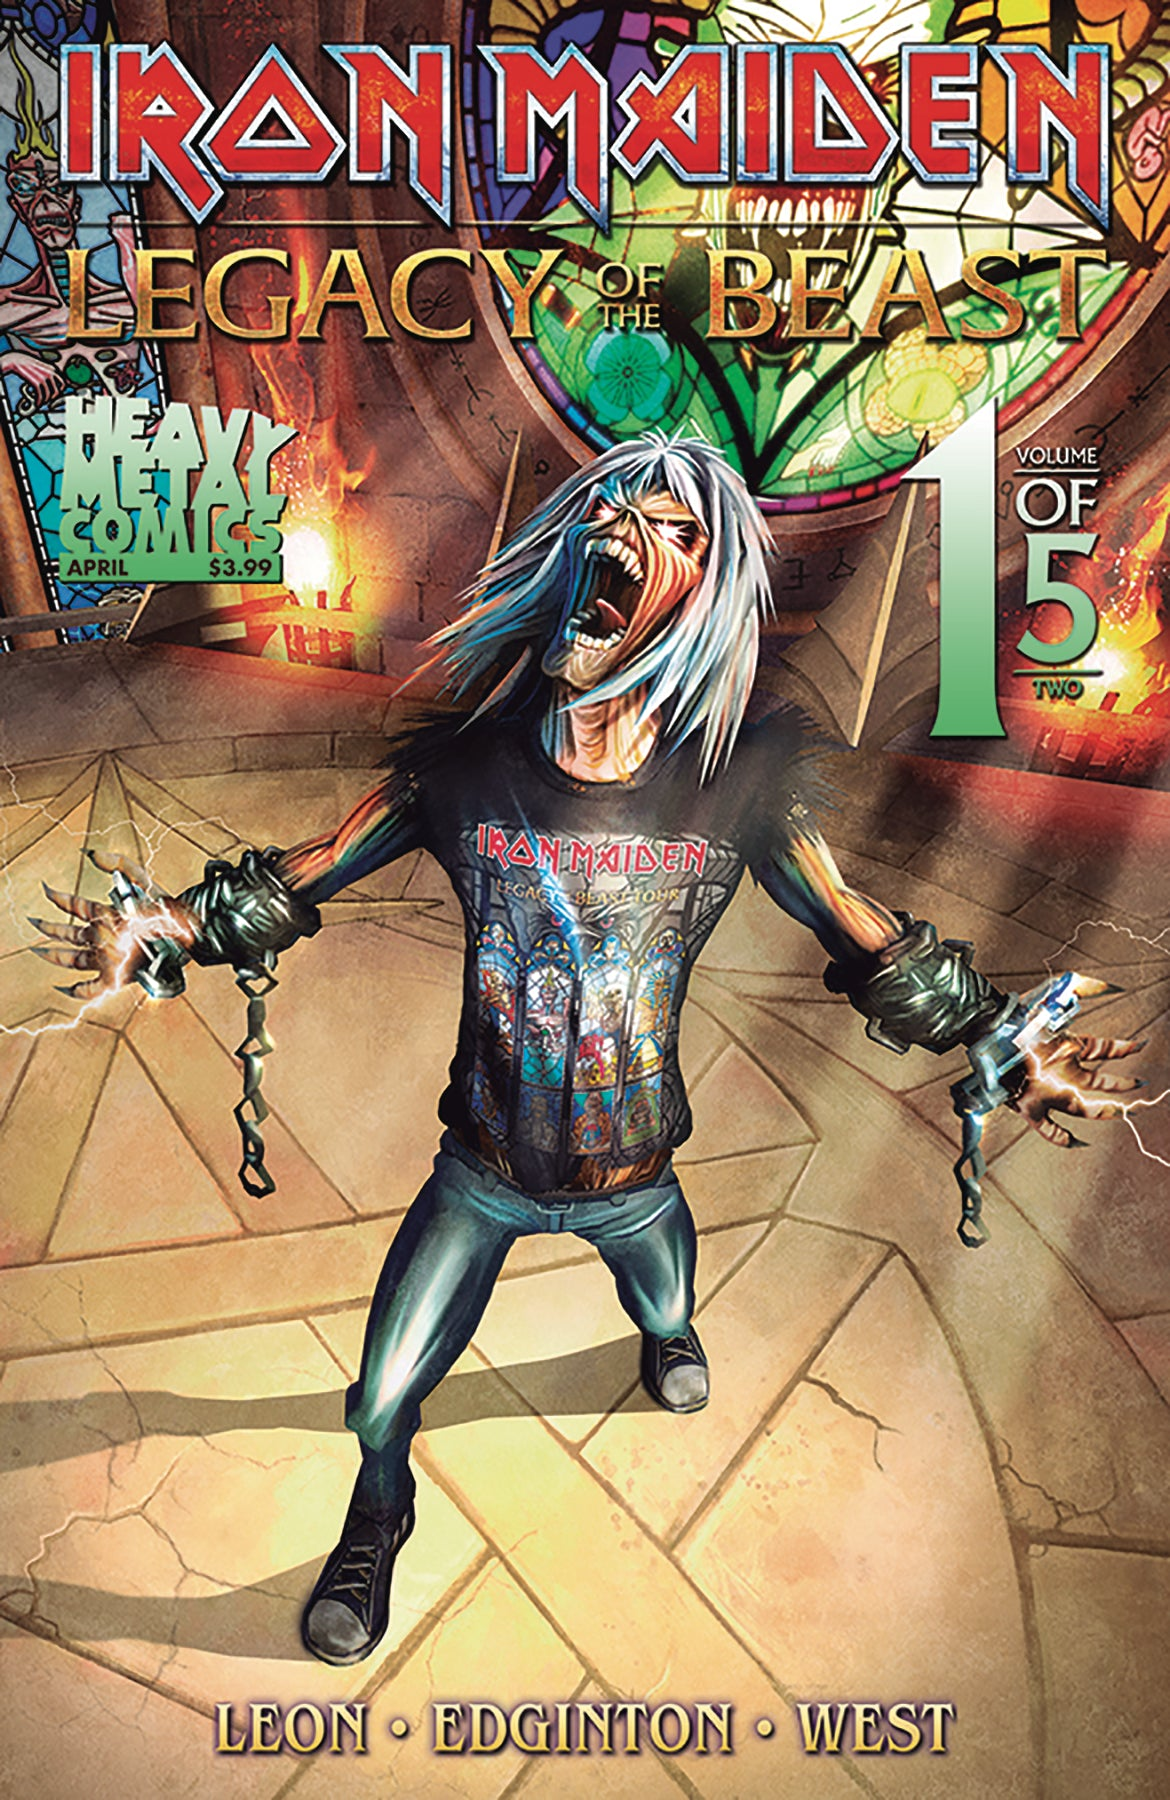 Iron Maiden Legacy of the Beast Vol2 - Night City - Issue #1 - Cover A